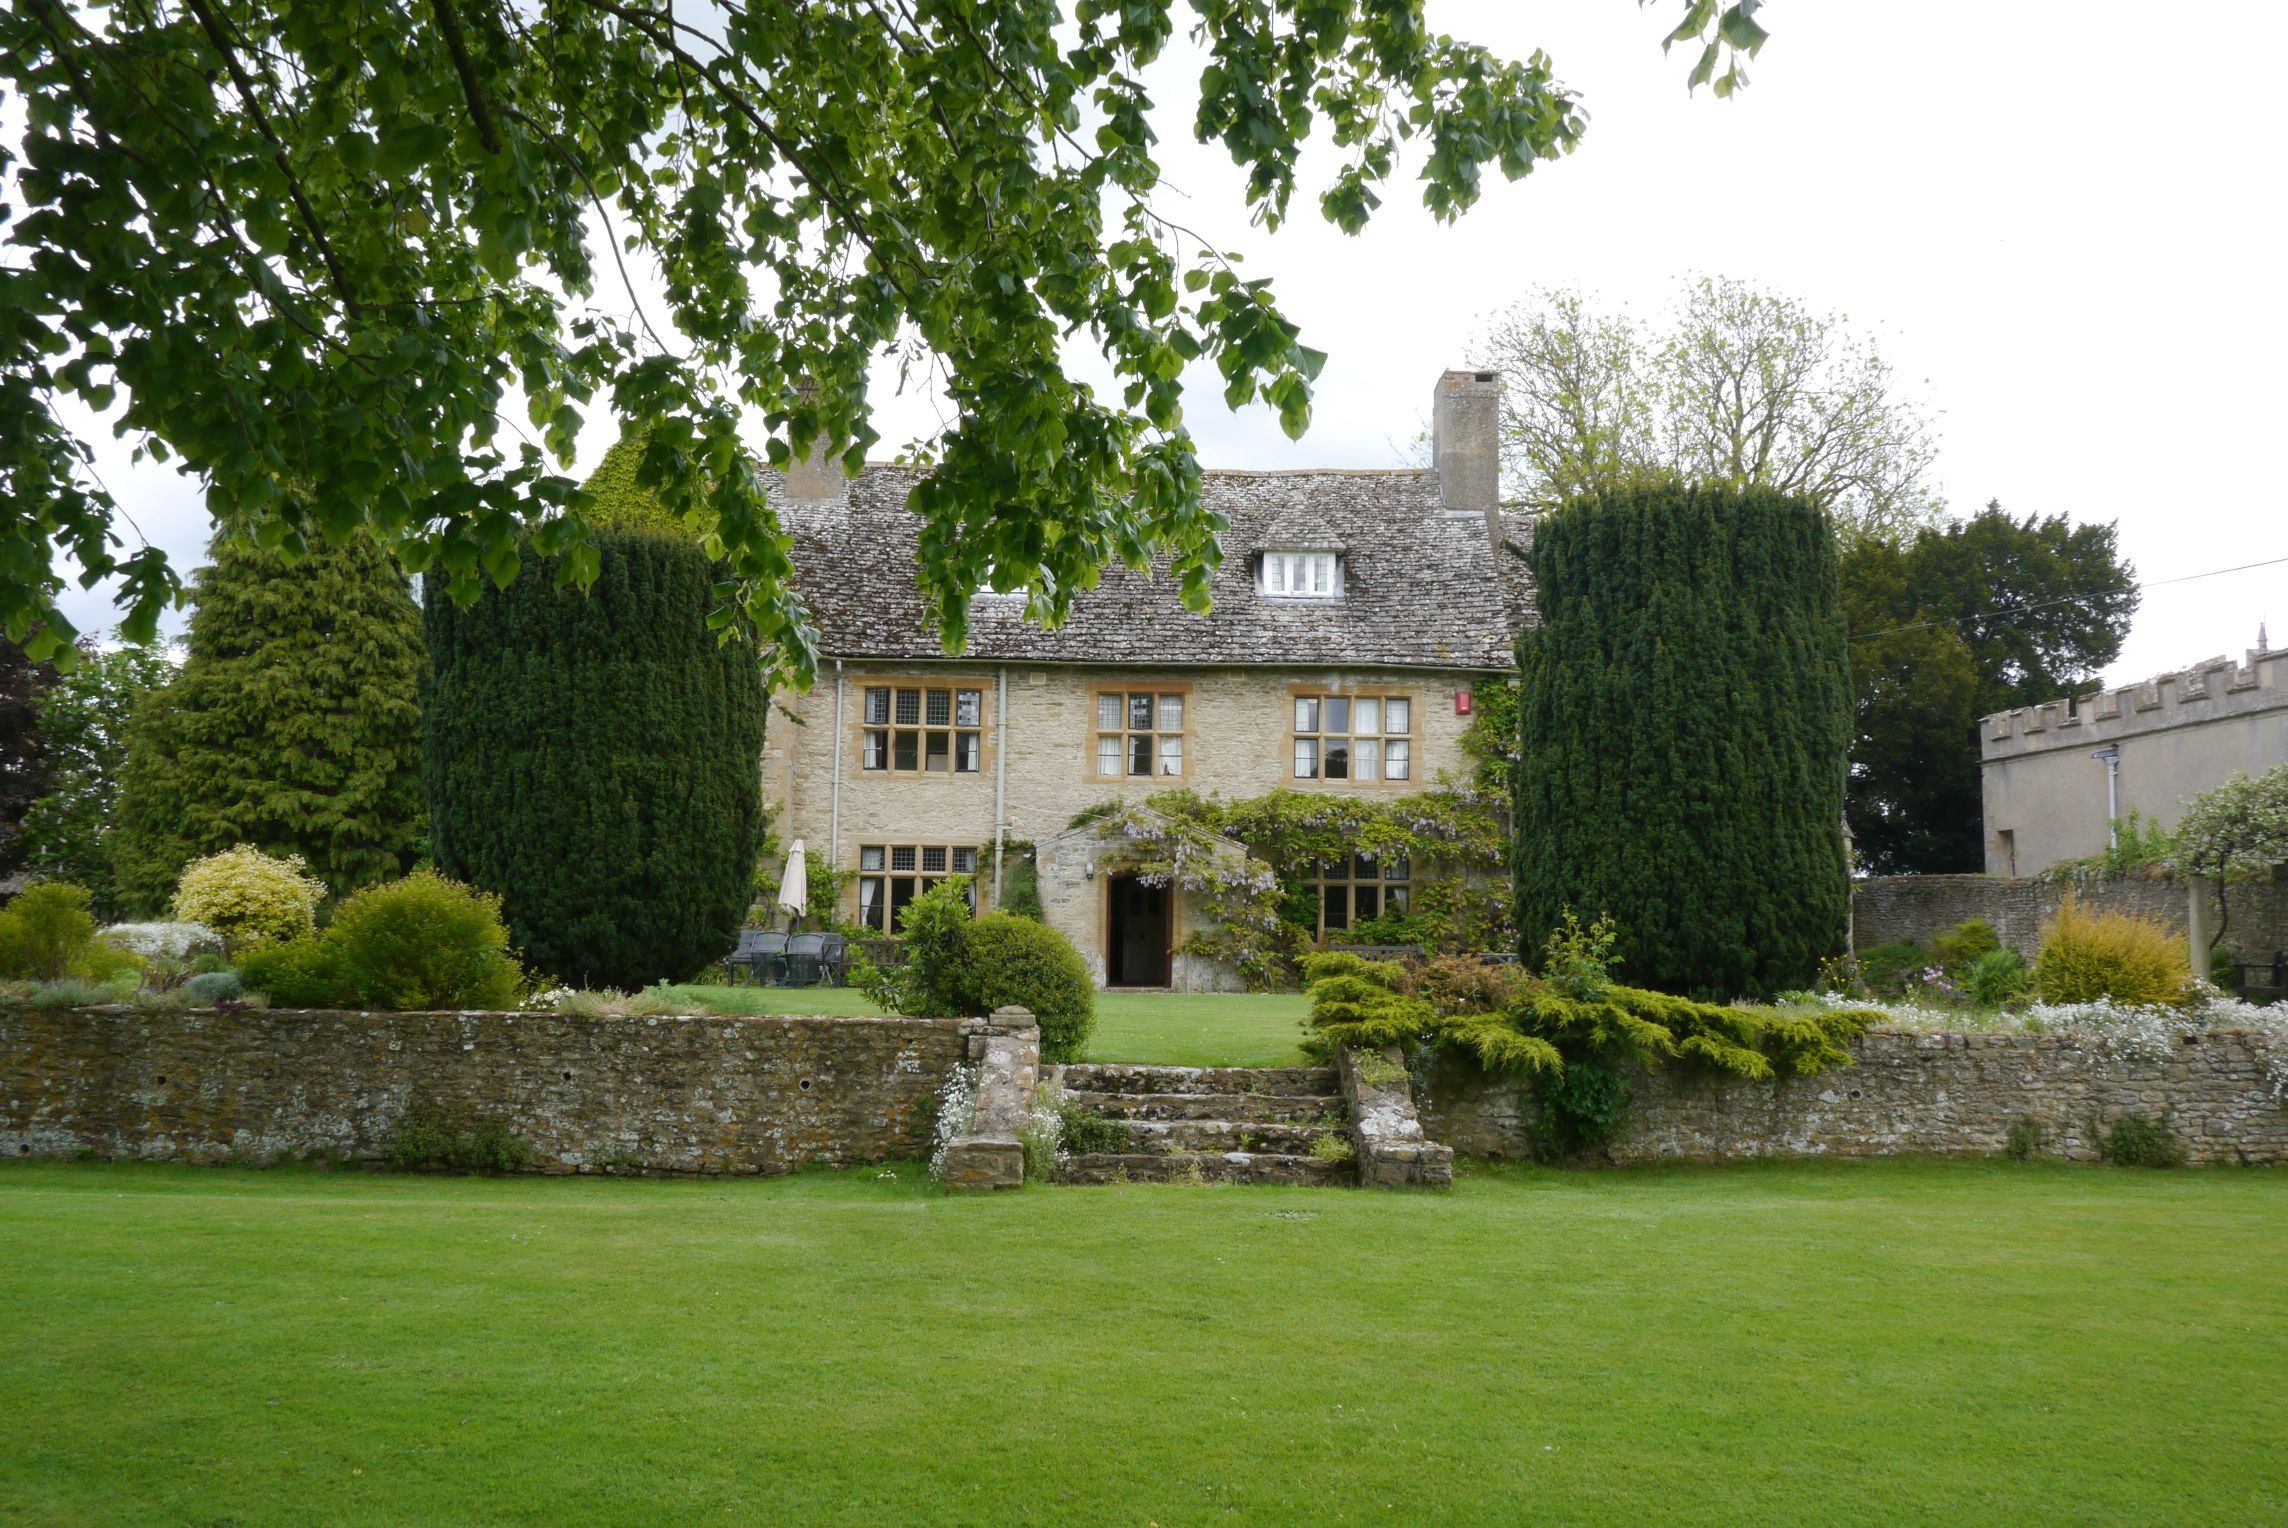 Charney Manor house